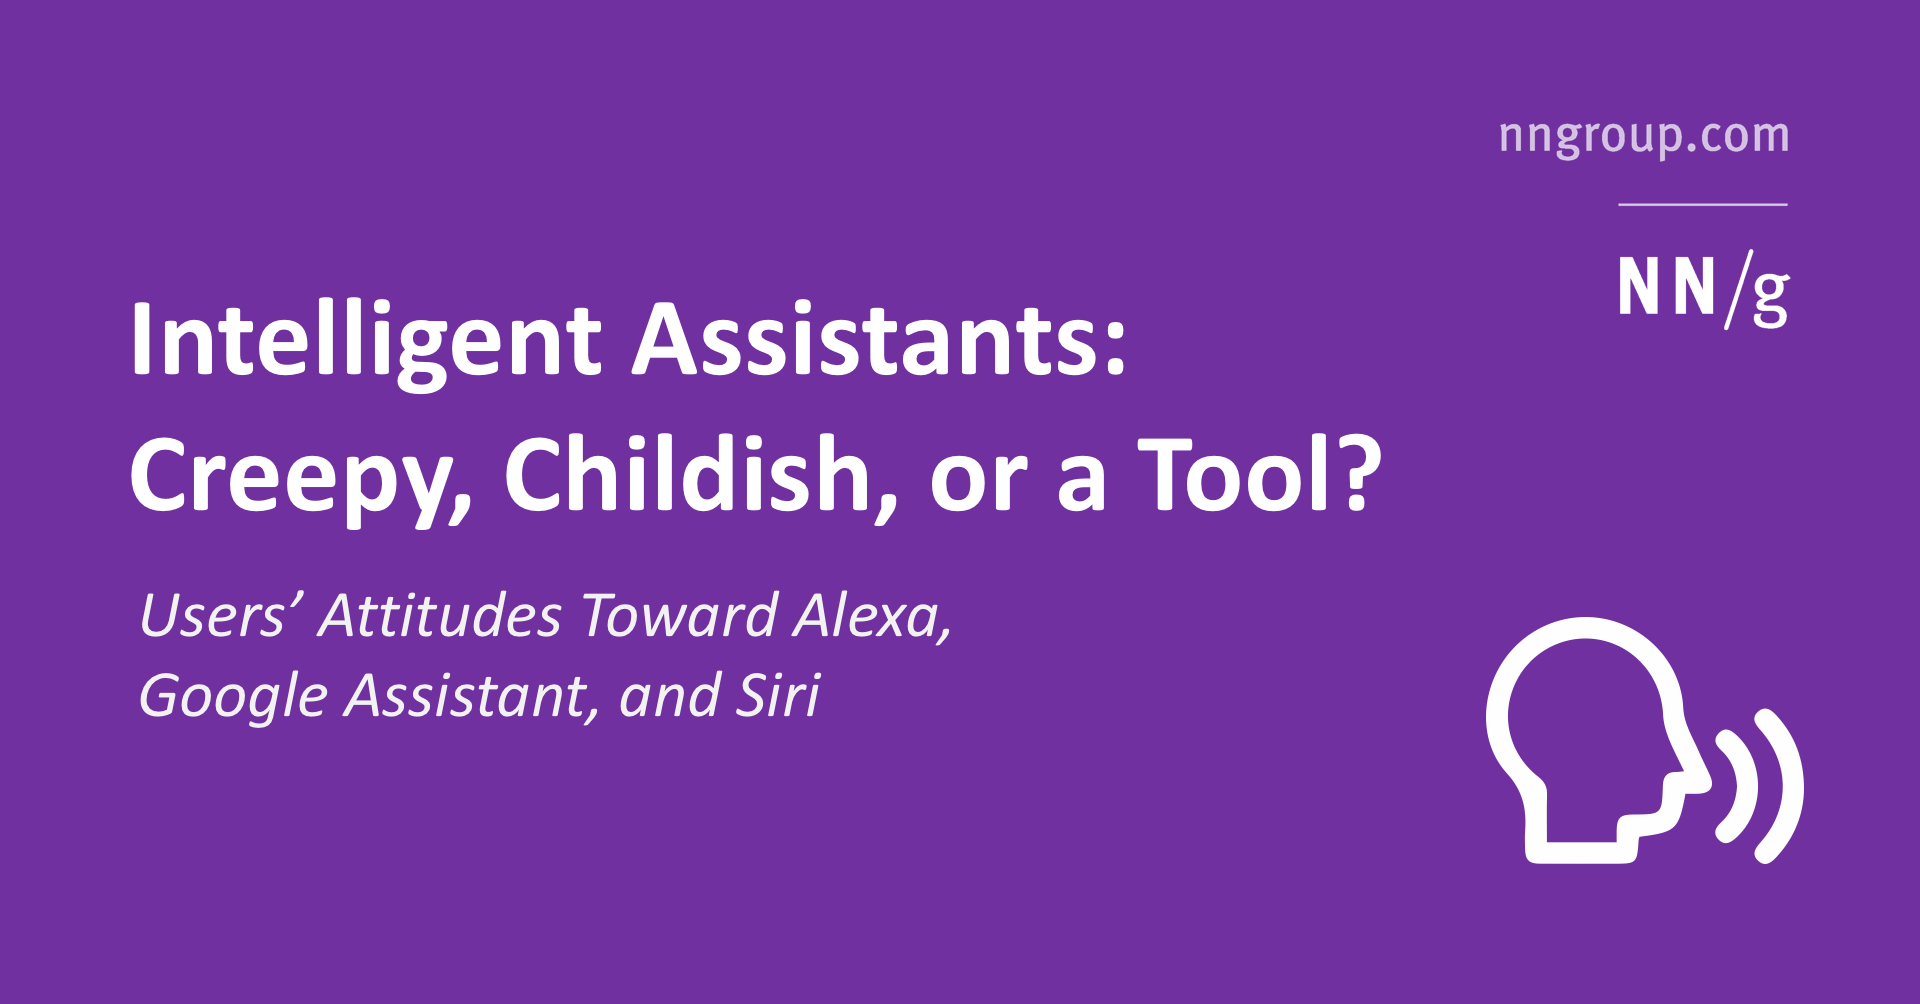 Intelligent Assistants: Creepy, Childish, or a Tool? Users' Attitudes Toward Alexa, Google Assistant, and Siri